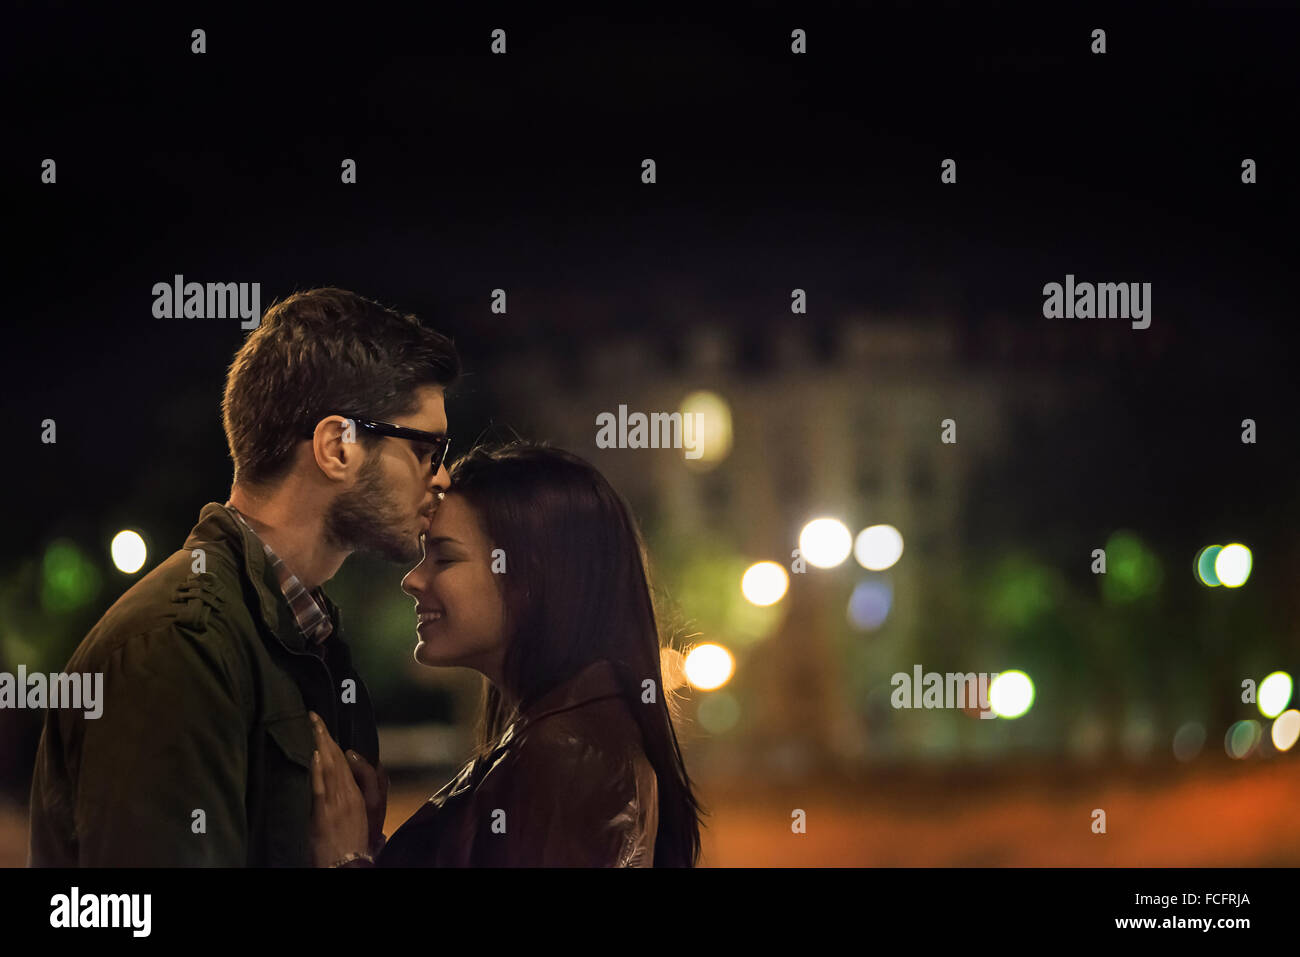 A couple kissing in a city at night. Stock Photo